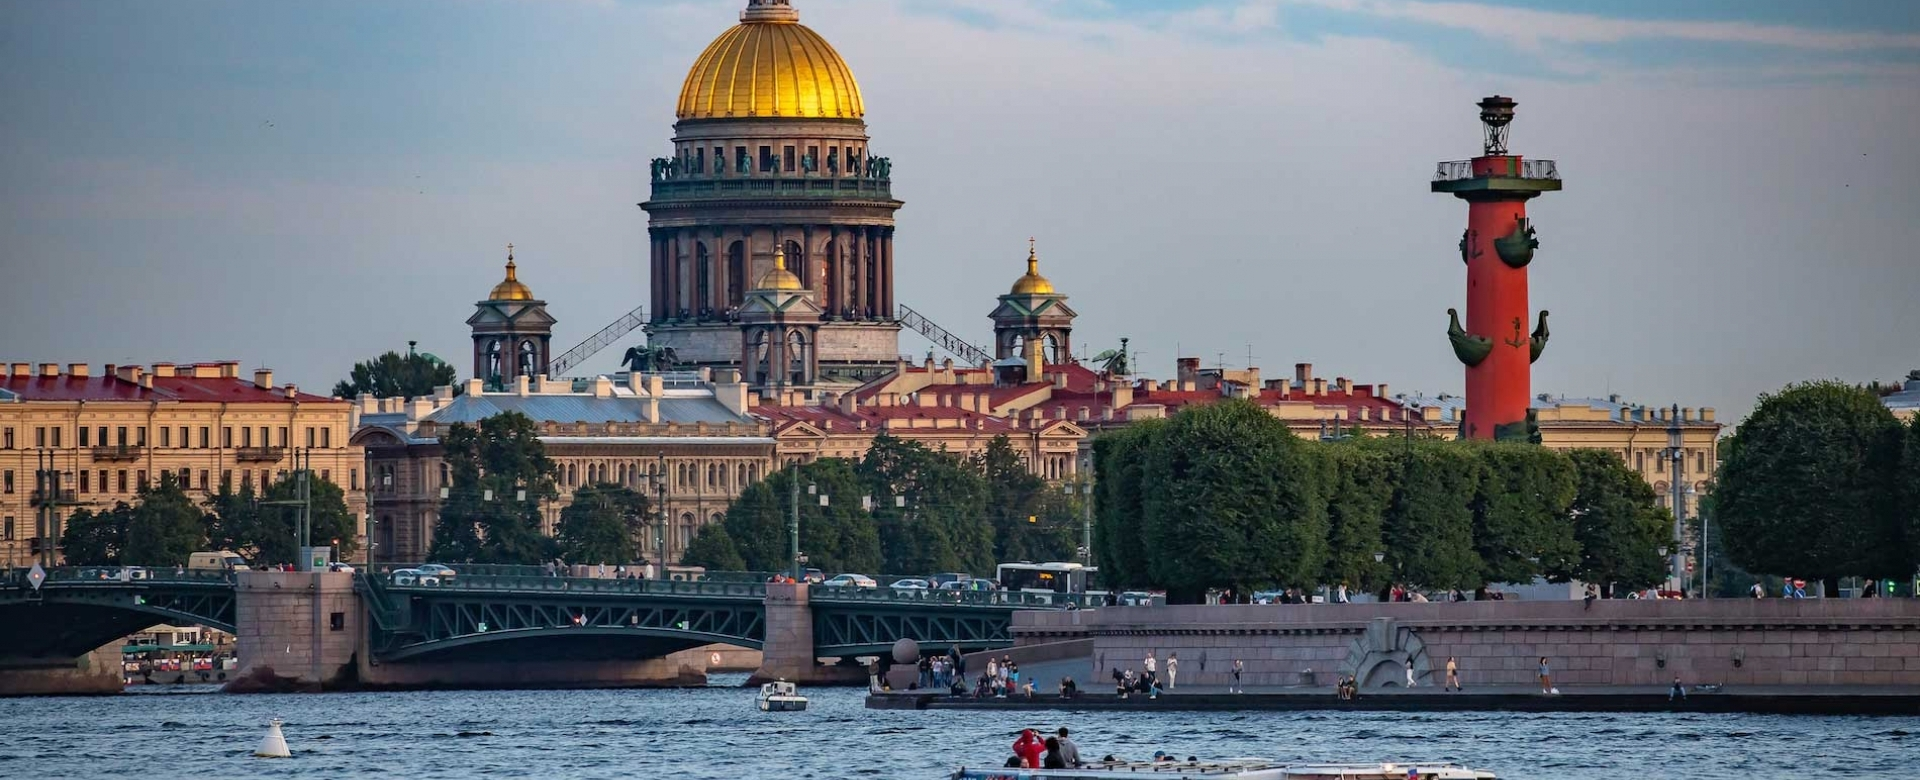 St.Petersburg - the City of Tsars